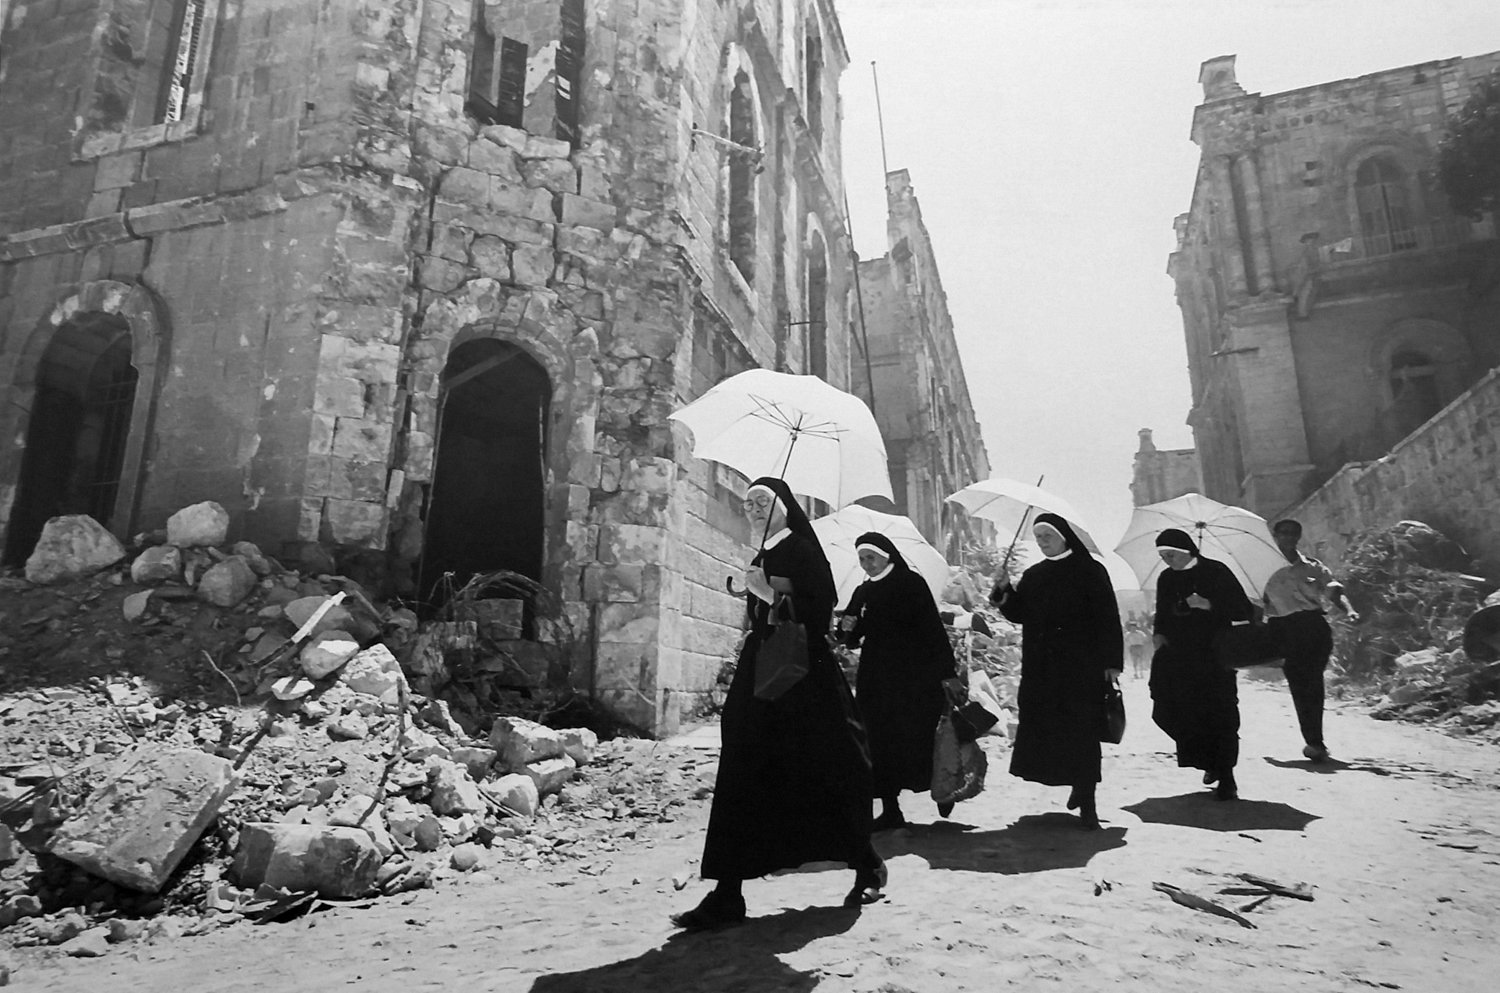 Christians pass through the New City in Jerusalem in a 1967 photograph by Leonard Freed. He was a staff photographer at Israel Magazine in the 1960s, later joining the legendary agency Magnum Photos.